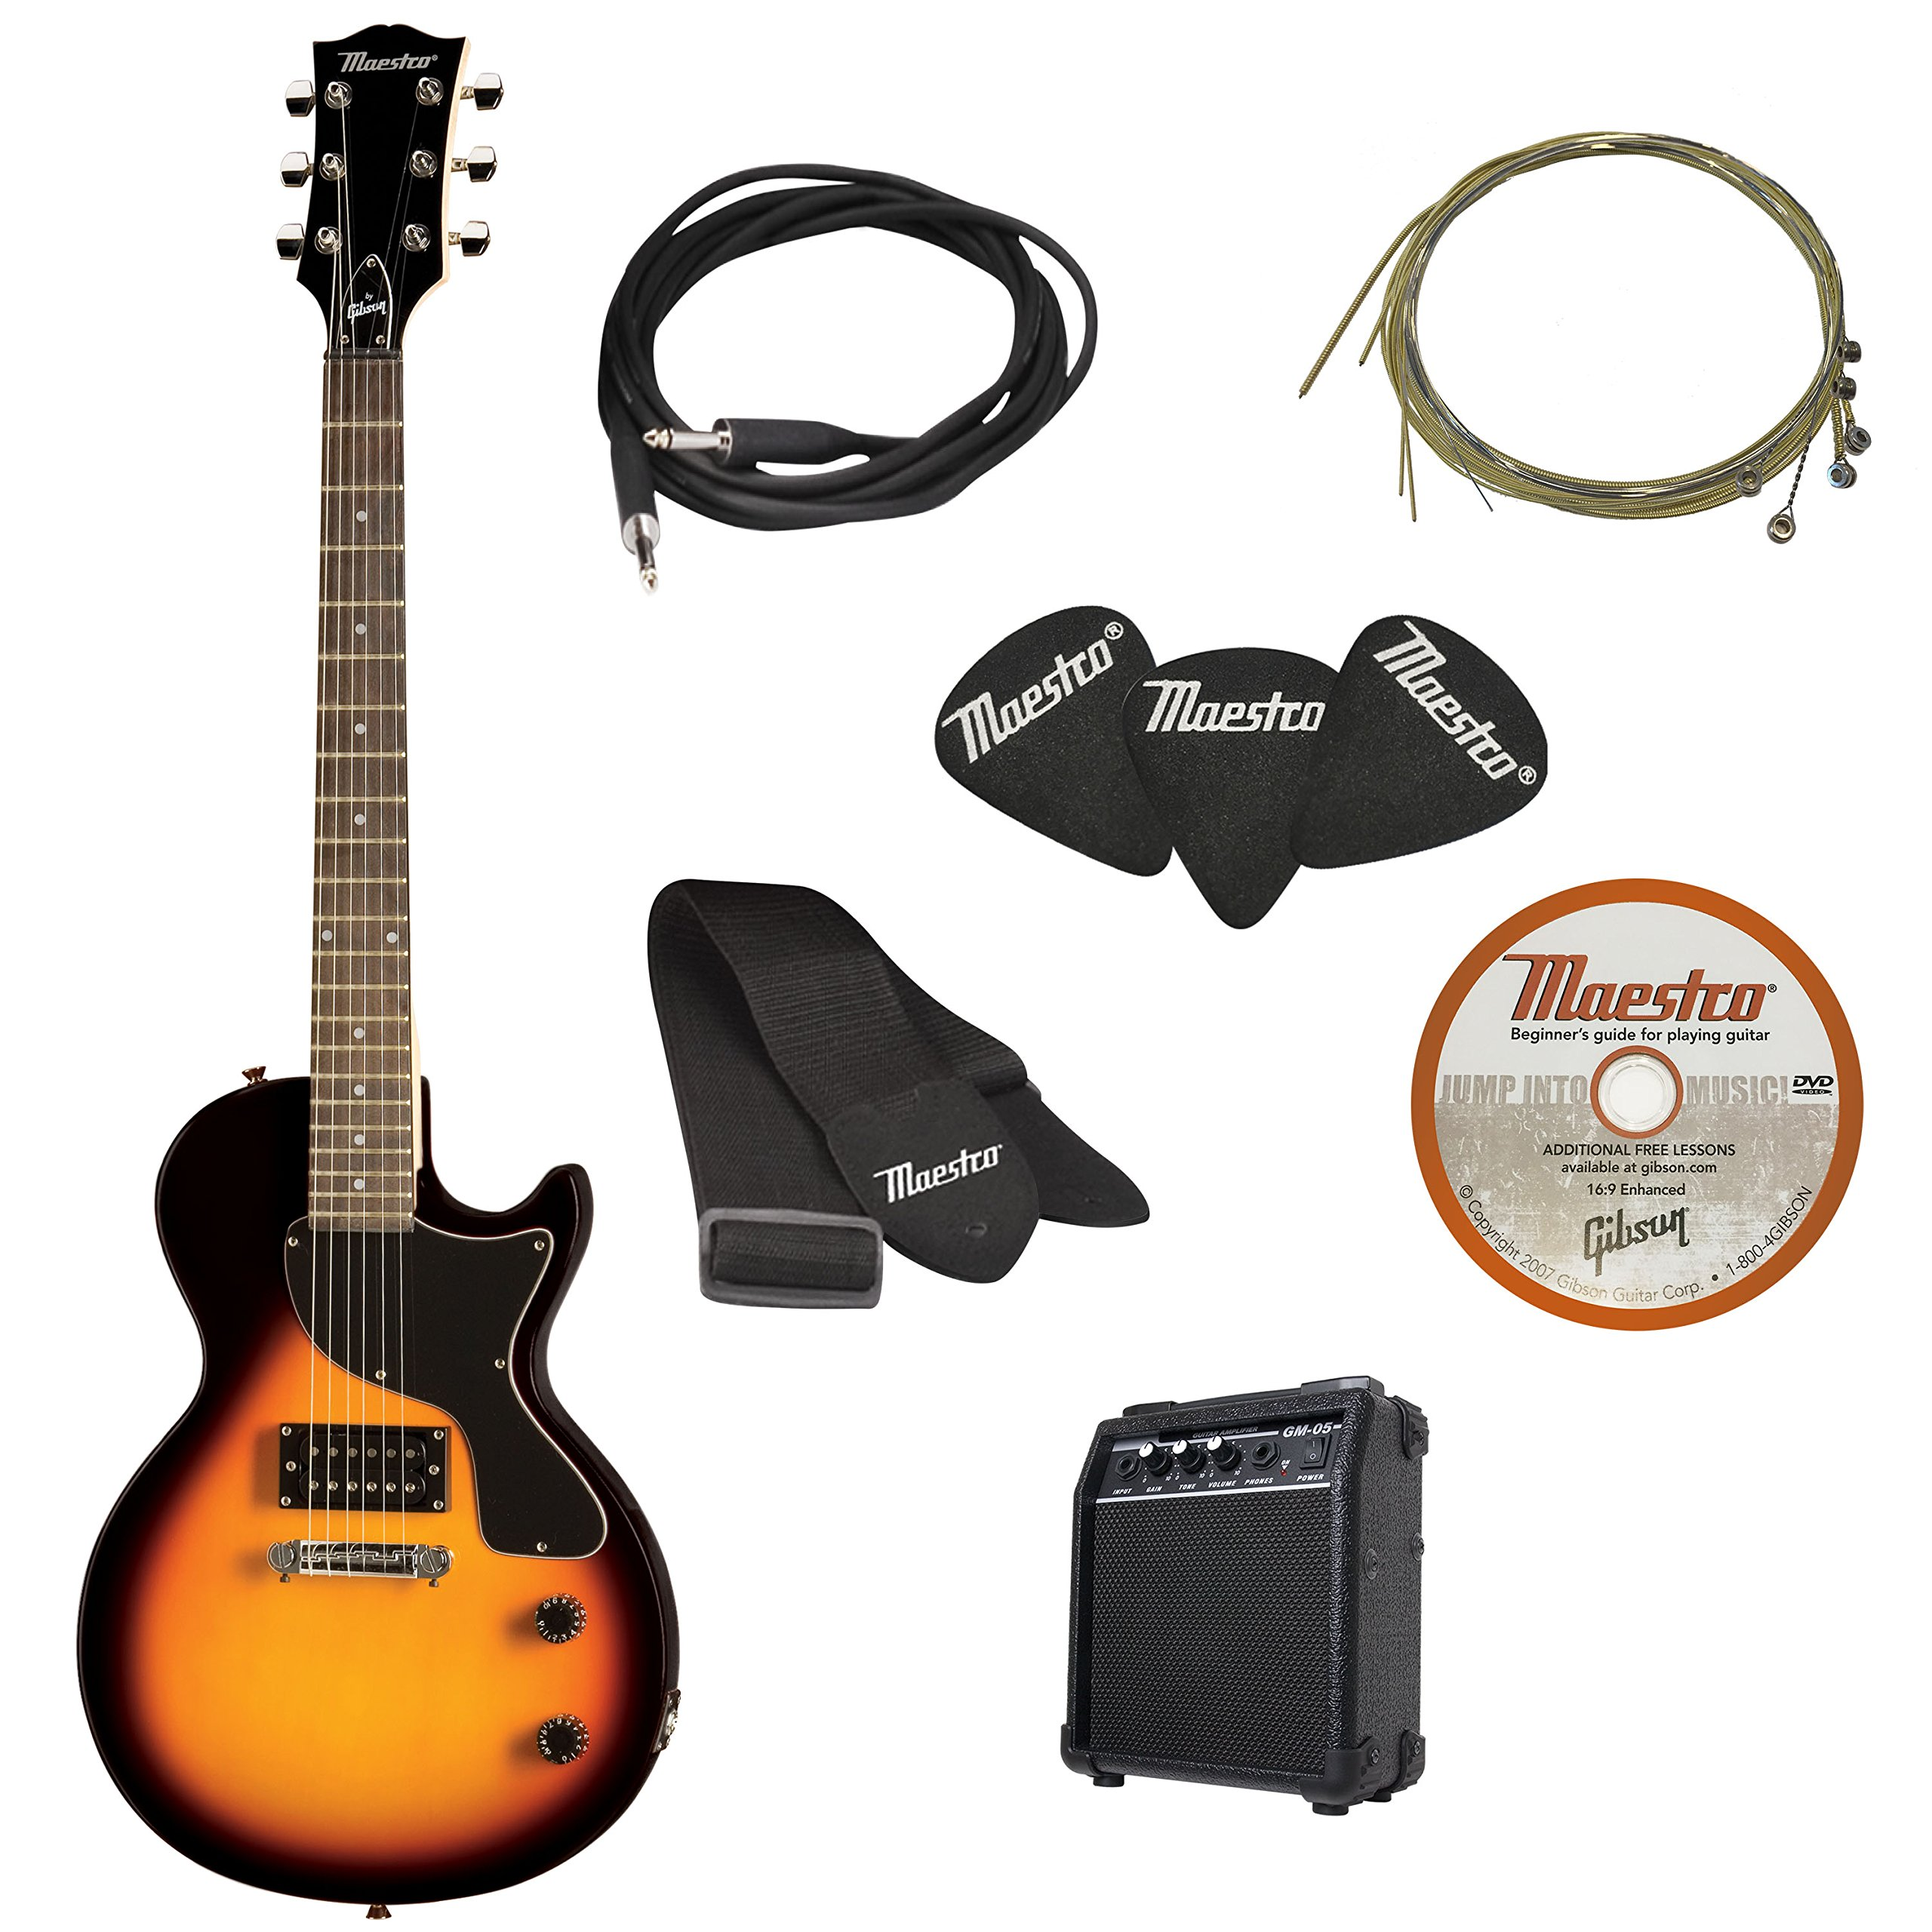 Maestro by Gibson Electric Guitar Starter Package, Vintage Sunburst by Gibson Innovations